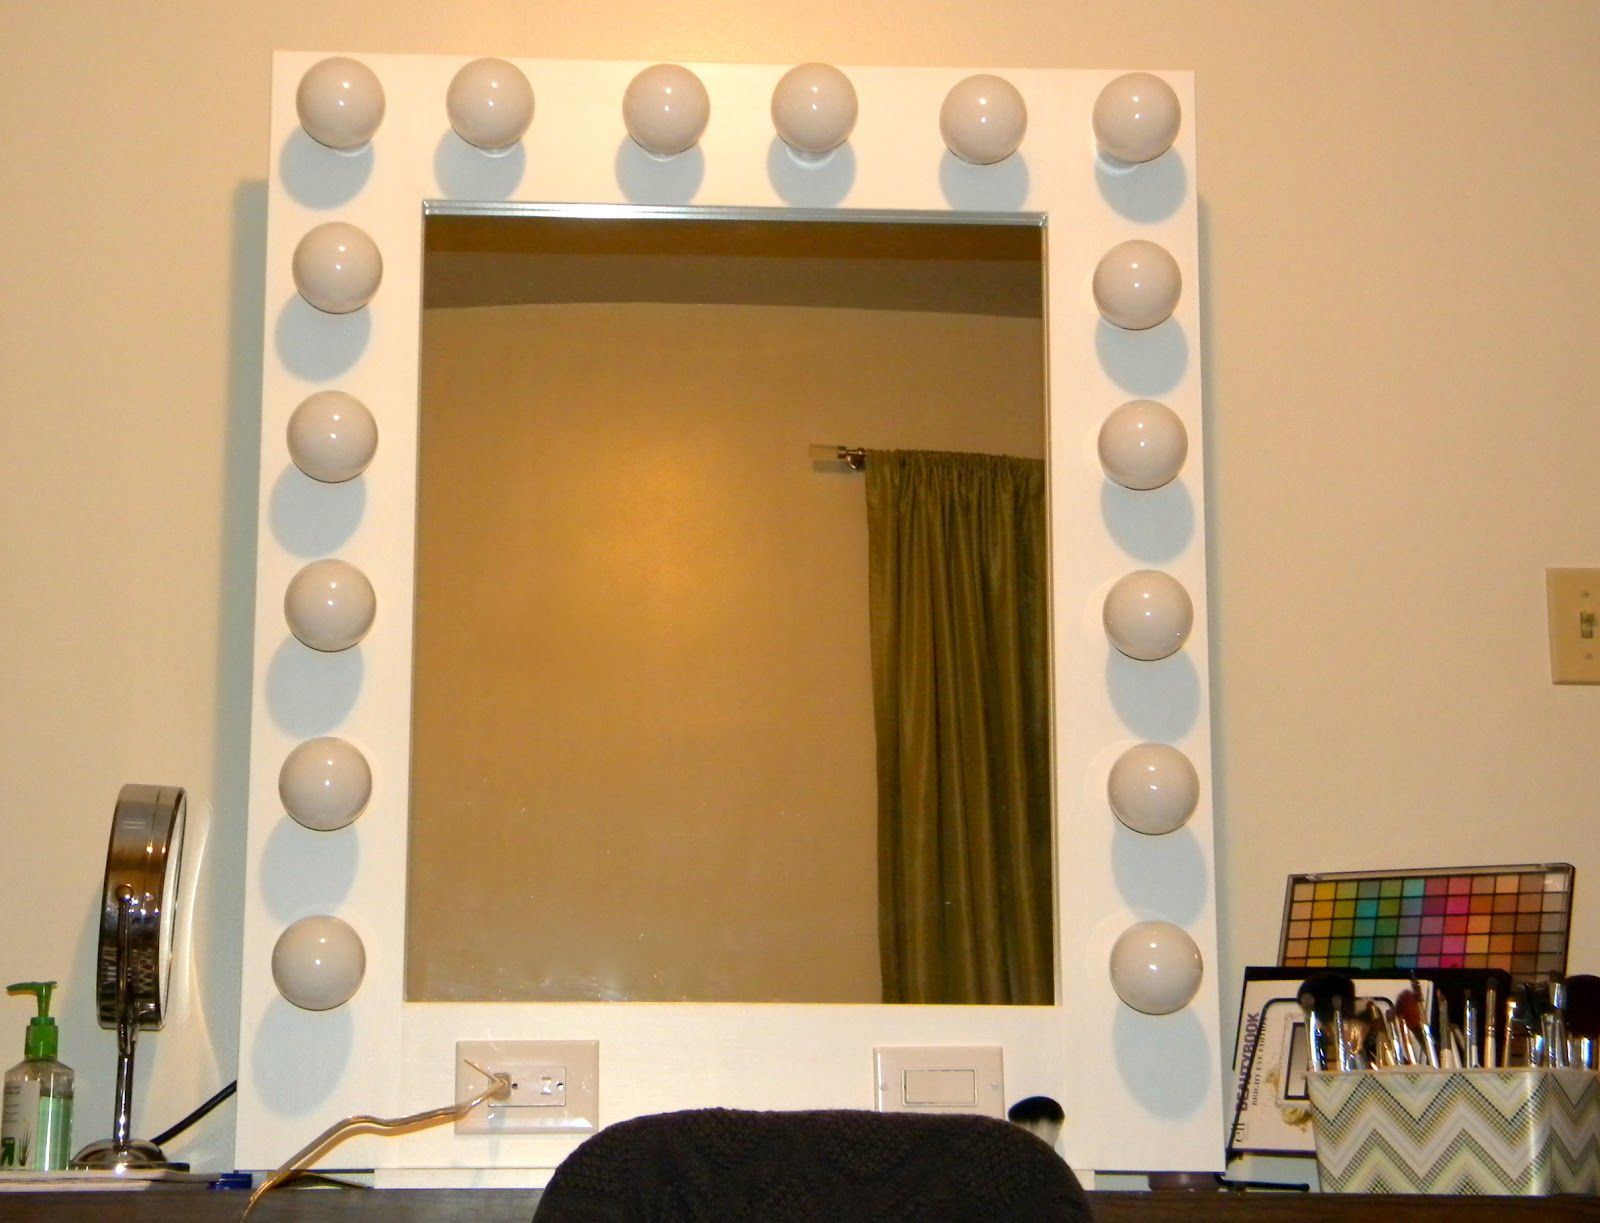 Importance of Vanity Mirrors with Lights   Light Decorating Ideas    Importance of Vanity Mirrors with Lights   Pinterest   Ideas  Lights and  Decorating. Importance of Vanity Mirrors with Lights   Light Decorating Ideas